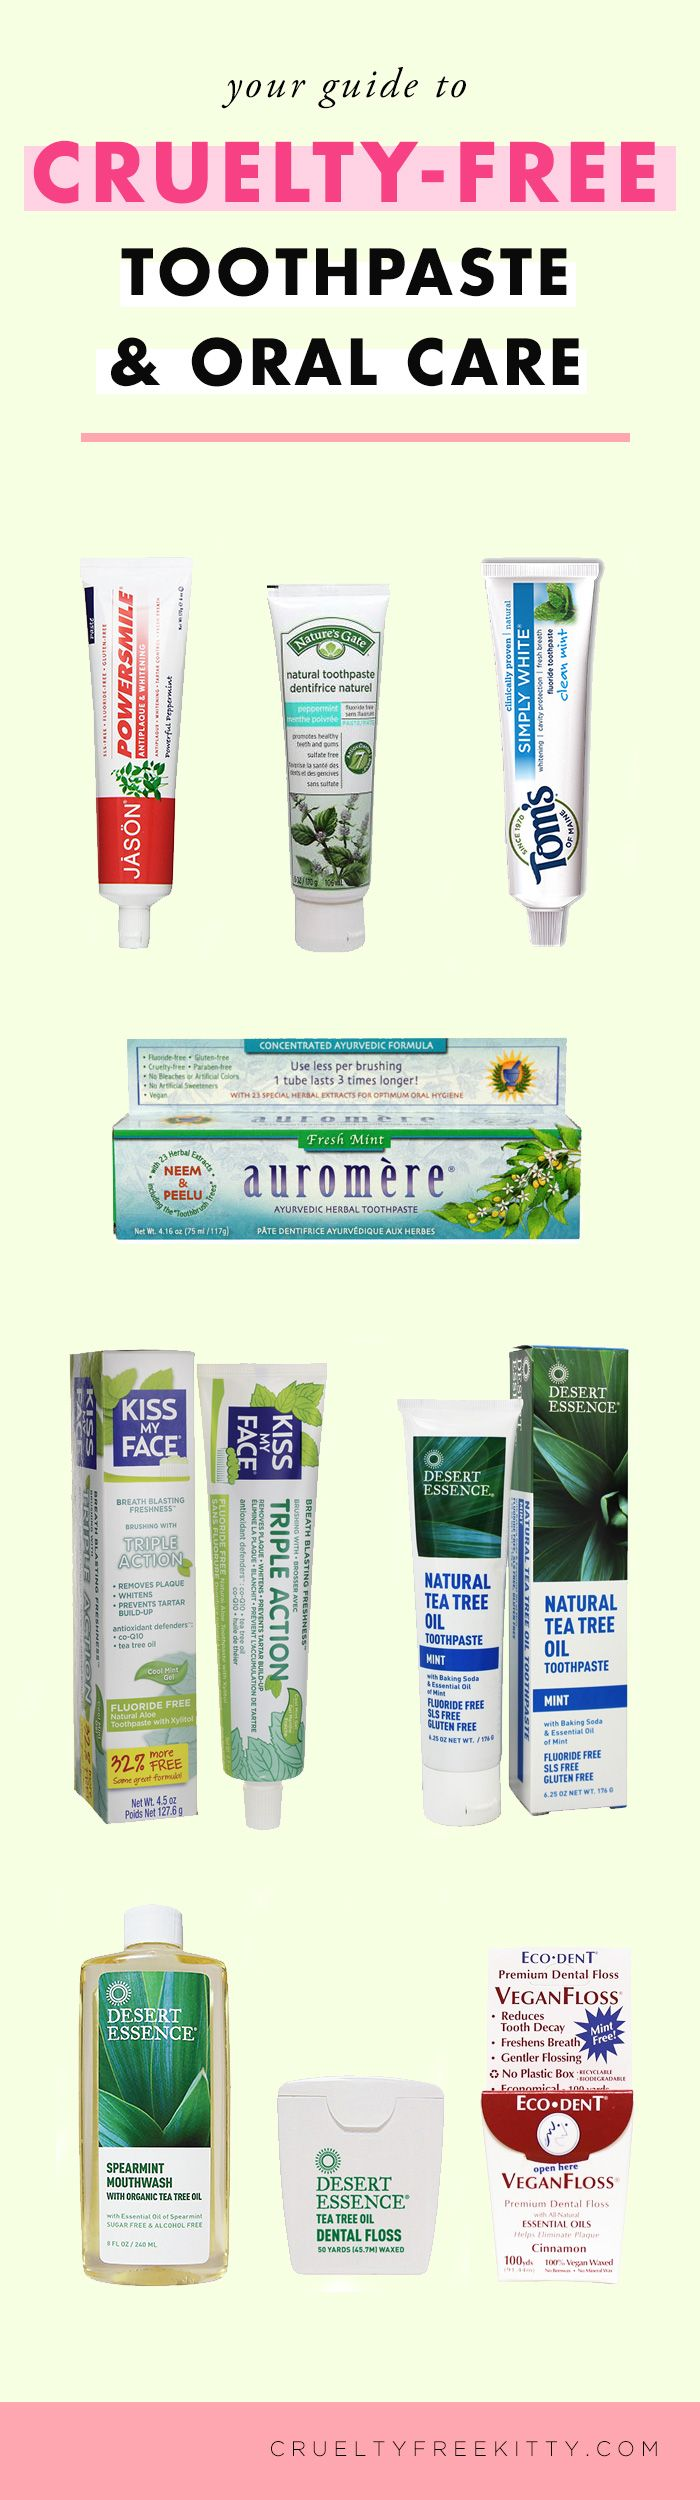 Cruelty Free Vegan Toothpaste Mouthwash And Floss Cruelty Free Toothpaste Gum Care Cruelty Free Cosmetics